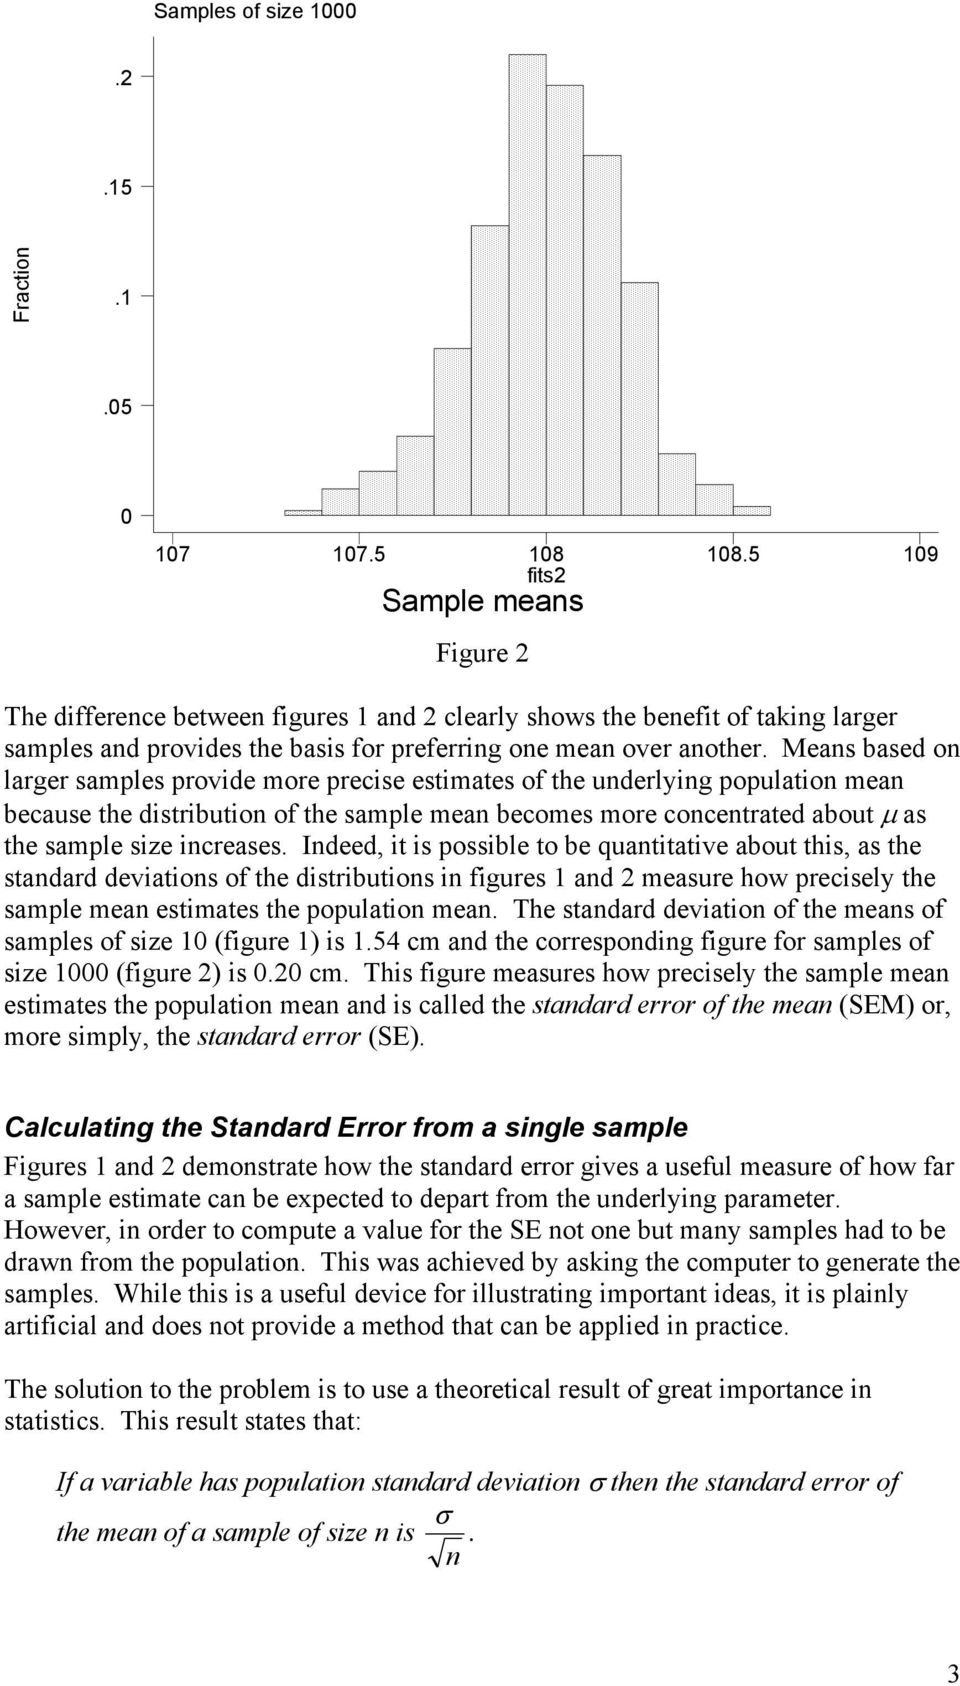 Meas based o larger samples provide more precise estimates of the uderlyig populatio mea because the distributio of the sample mea becomes more cocetrated about μ as the sample size icreases.